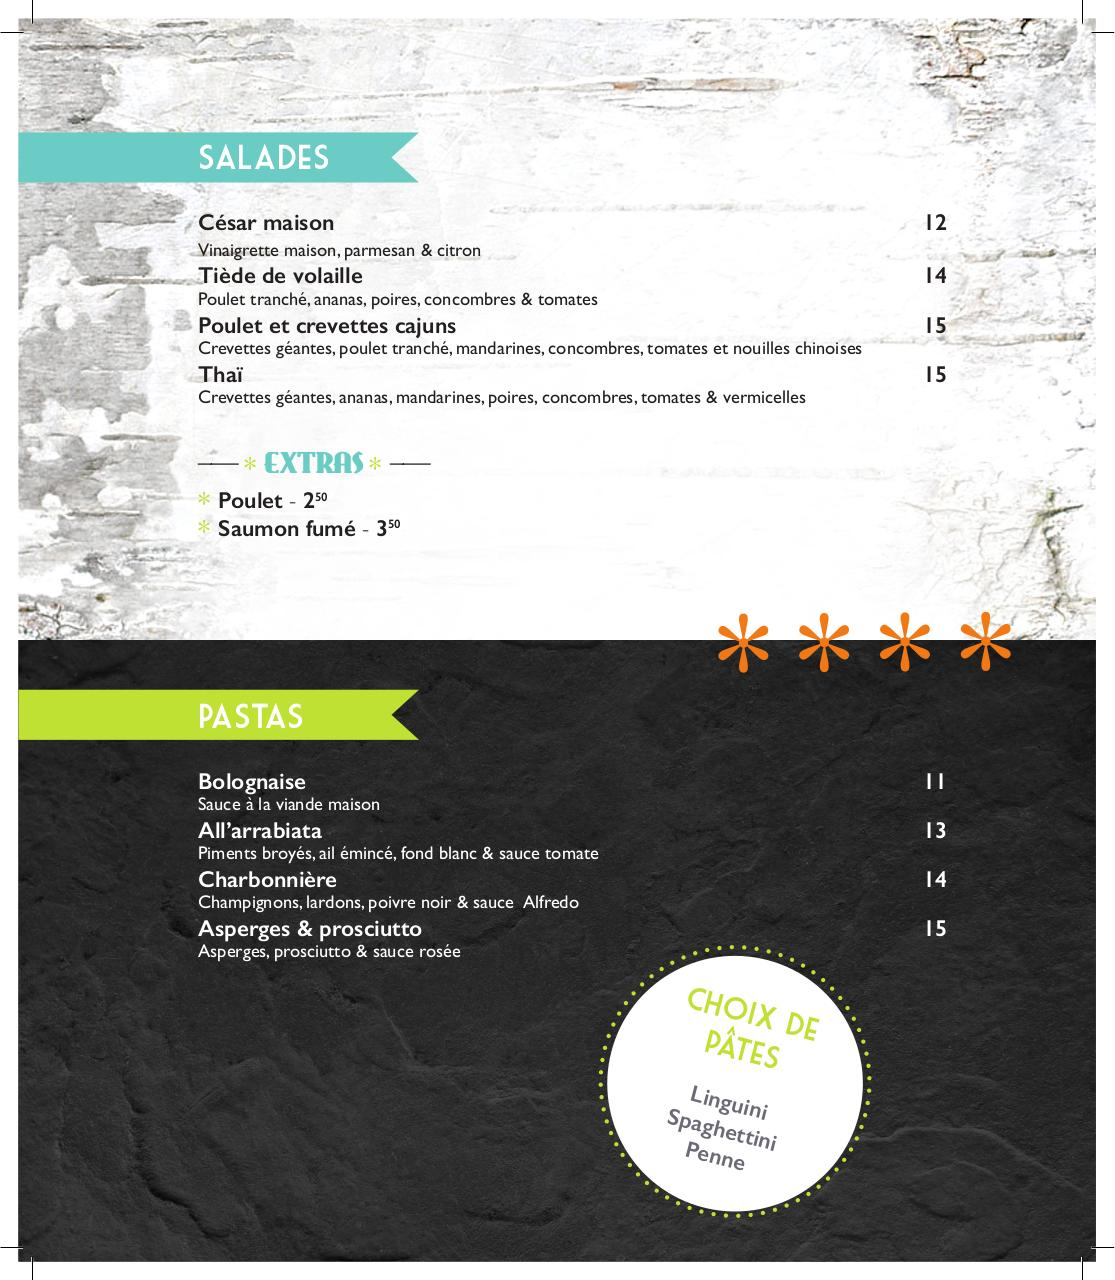 Menu MAC- Bromont - IMPRESSION.jp - Copie.pdf - page 3/6